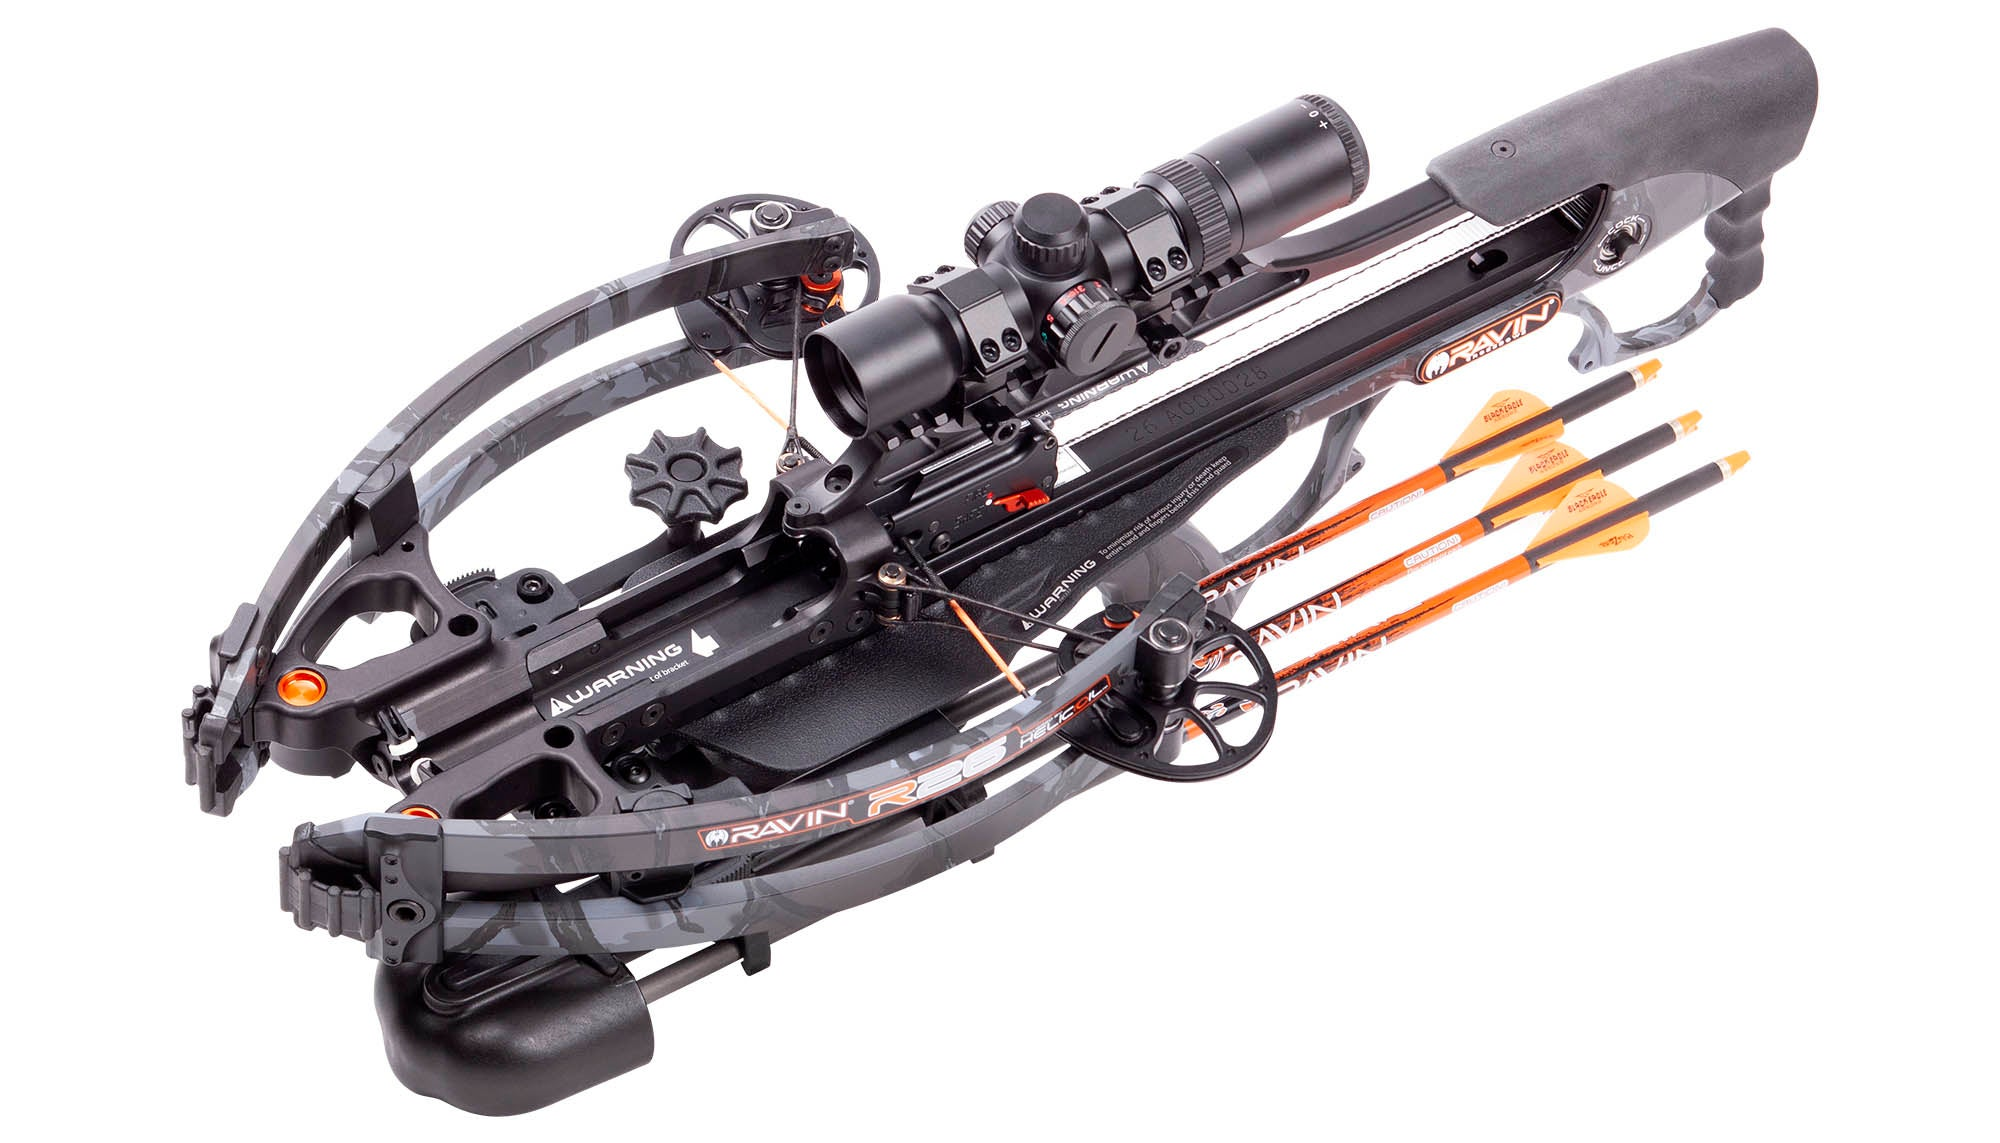 the Ravin R26 crossbow is a best crossbow for youth hunters.